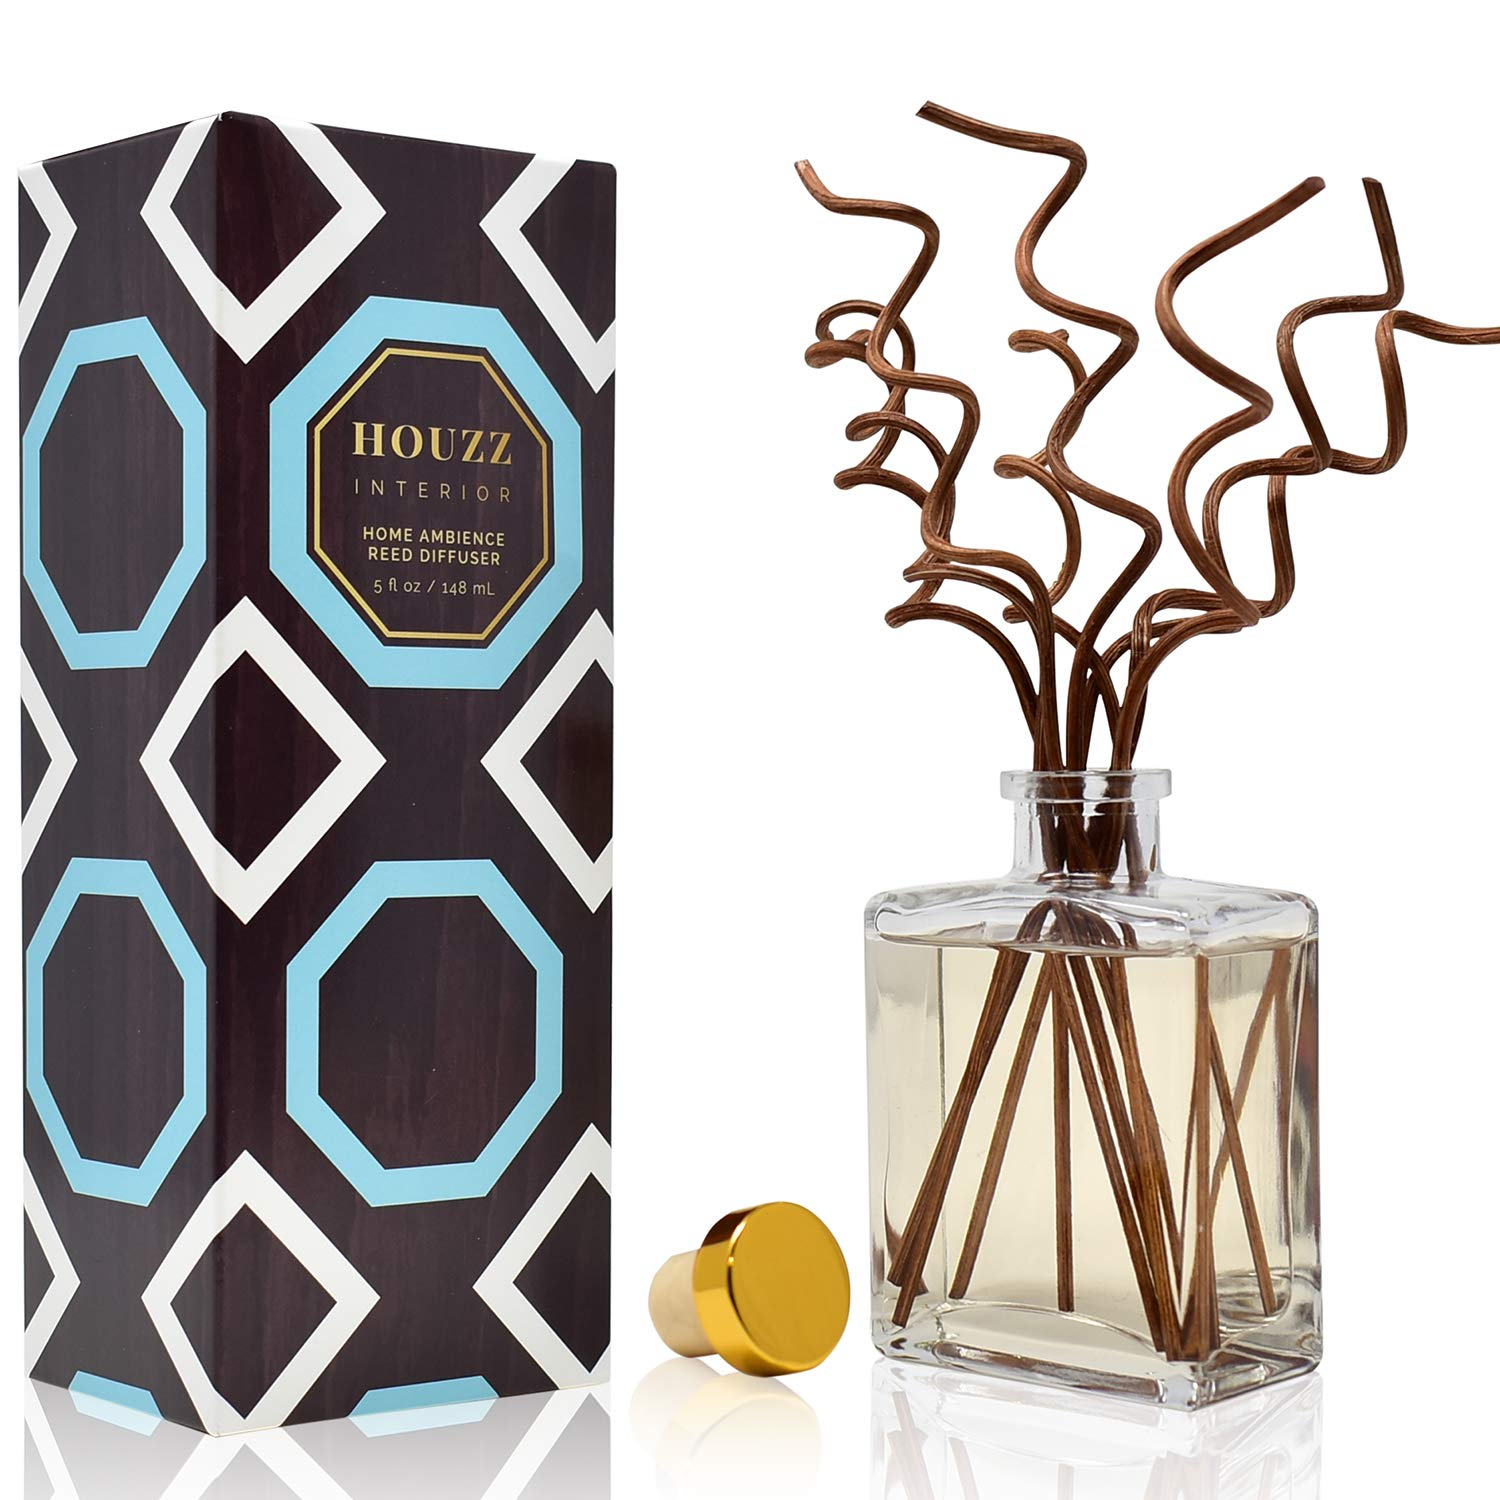 HOUZZ Interior Lemon Verbena Essential Oil Reed Diffuser - Lemon Zest and Verbena Blossoms Blended with Vetiver and Natural Lemongrass - Great Housewarming Gift Idea